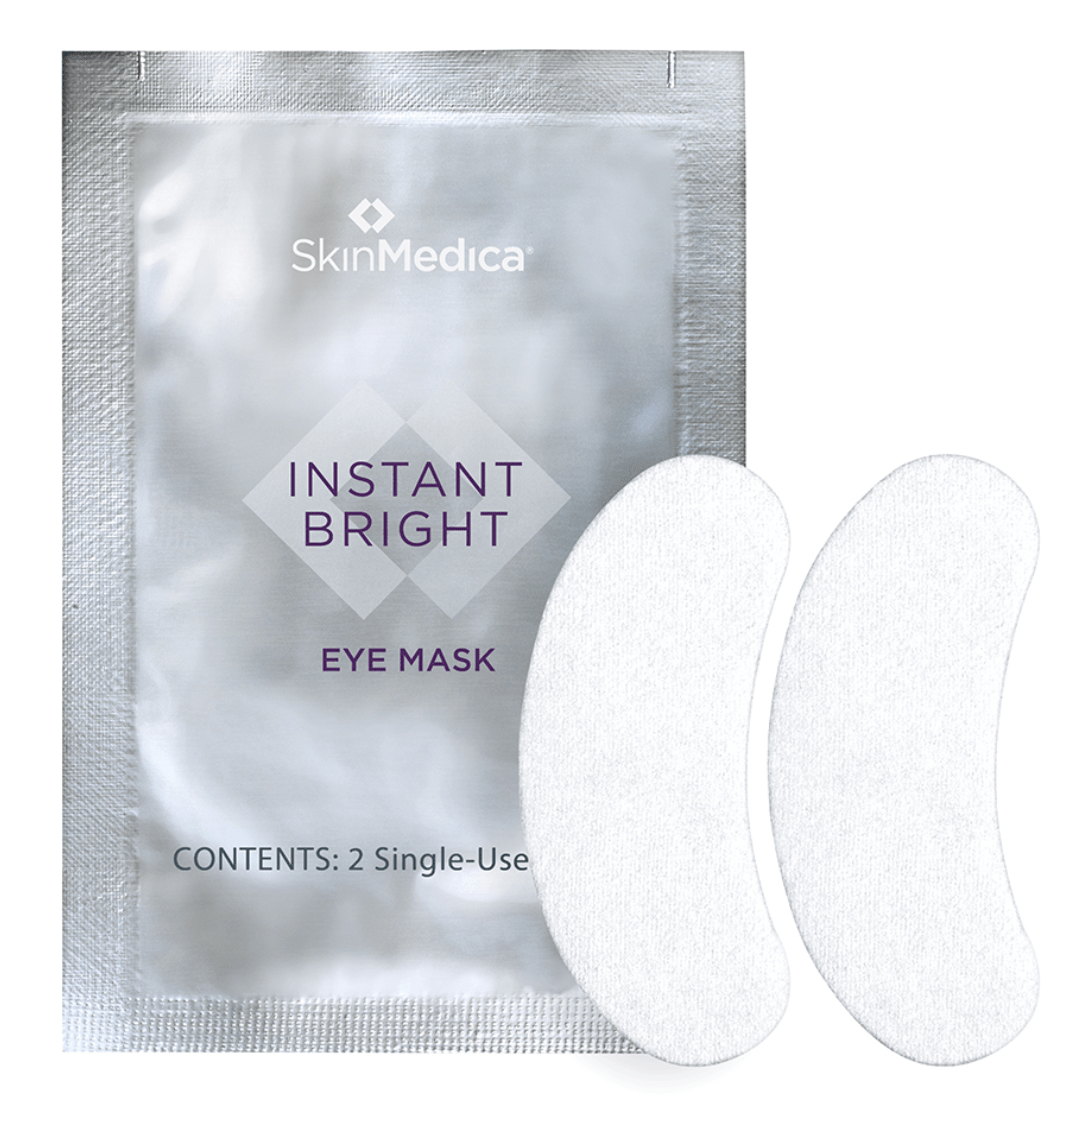 image descriptionSkinMedica- Instant Bright Eye Mask